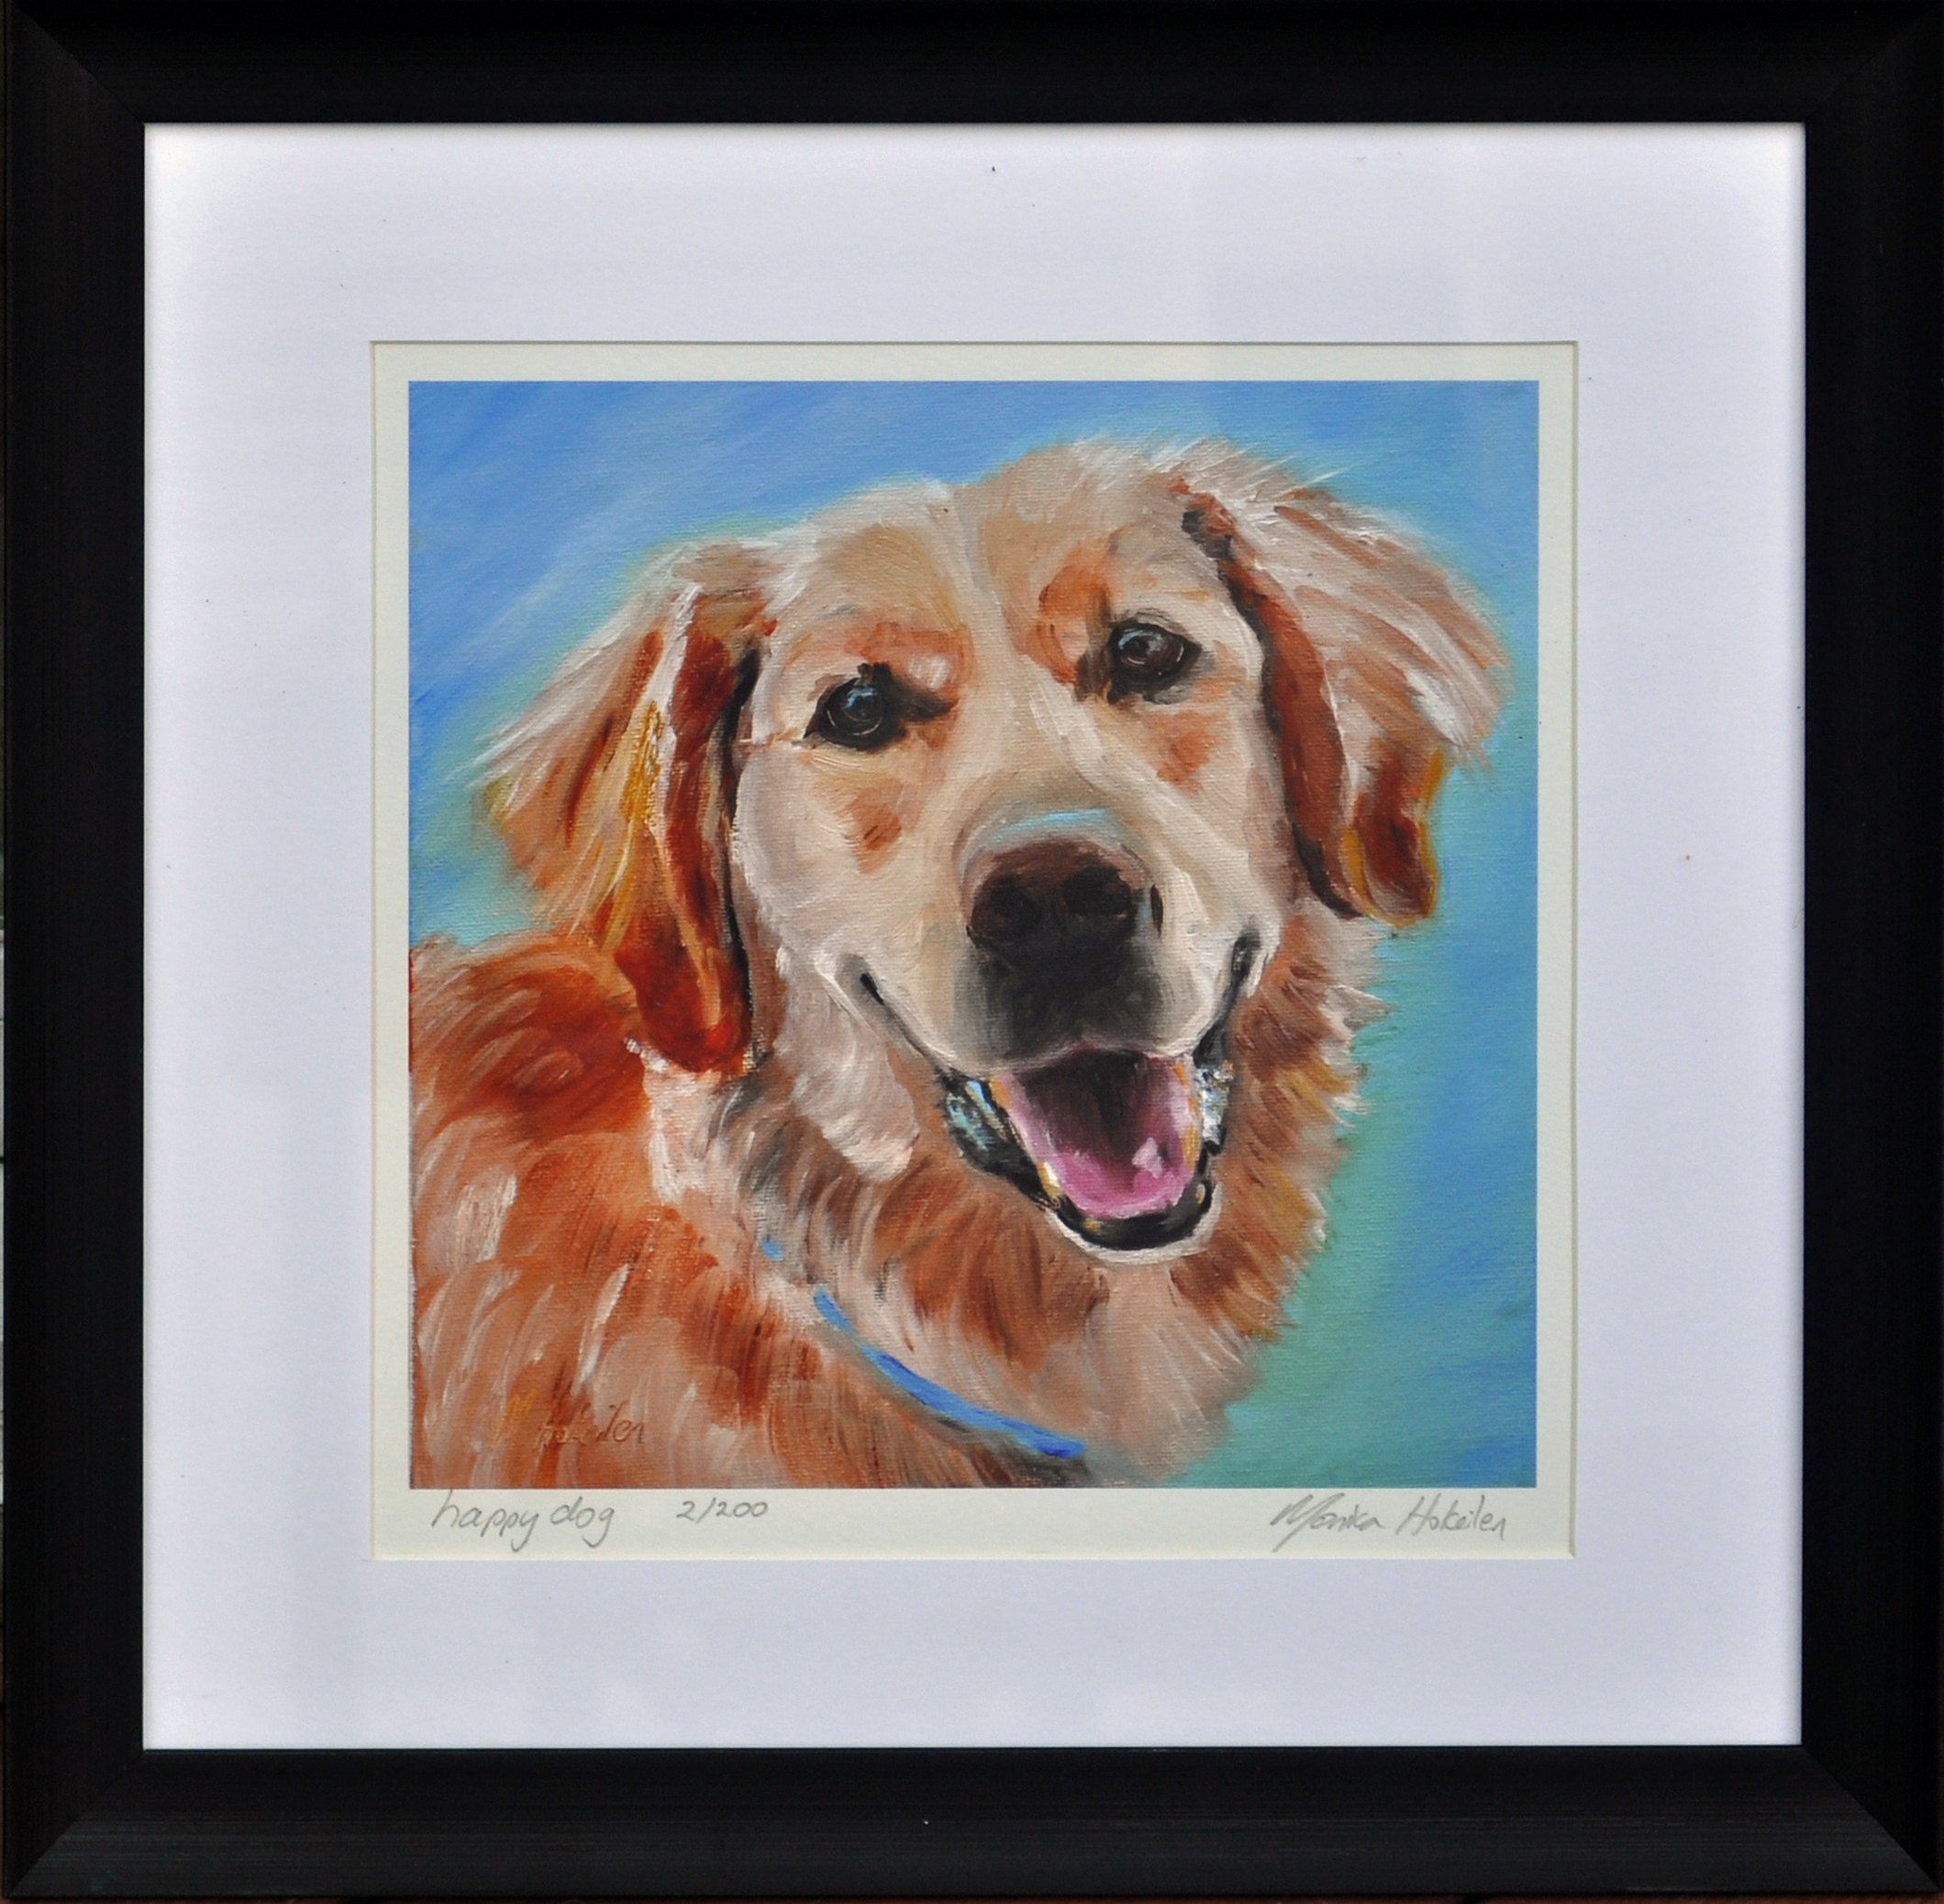 Happy Dog, matted and framed fine art print